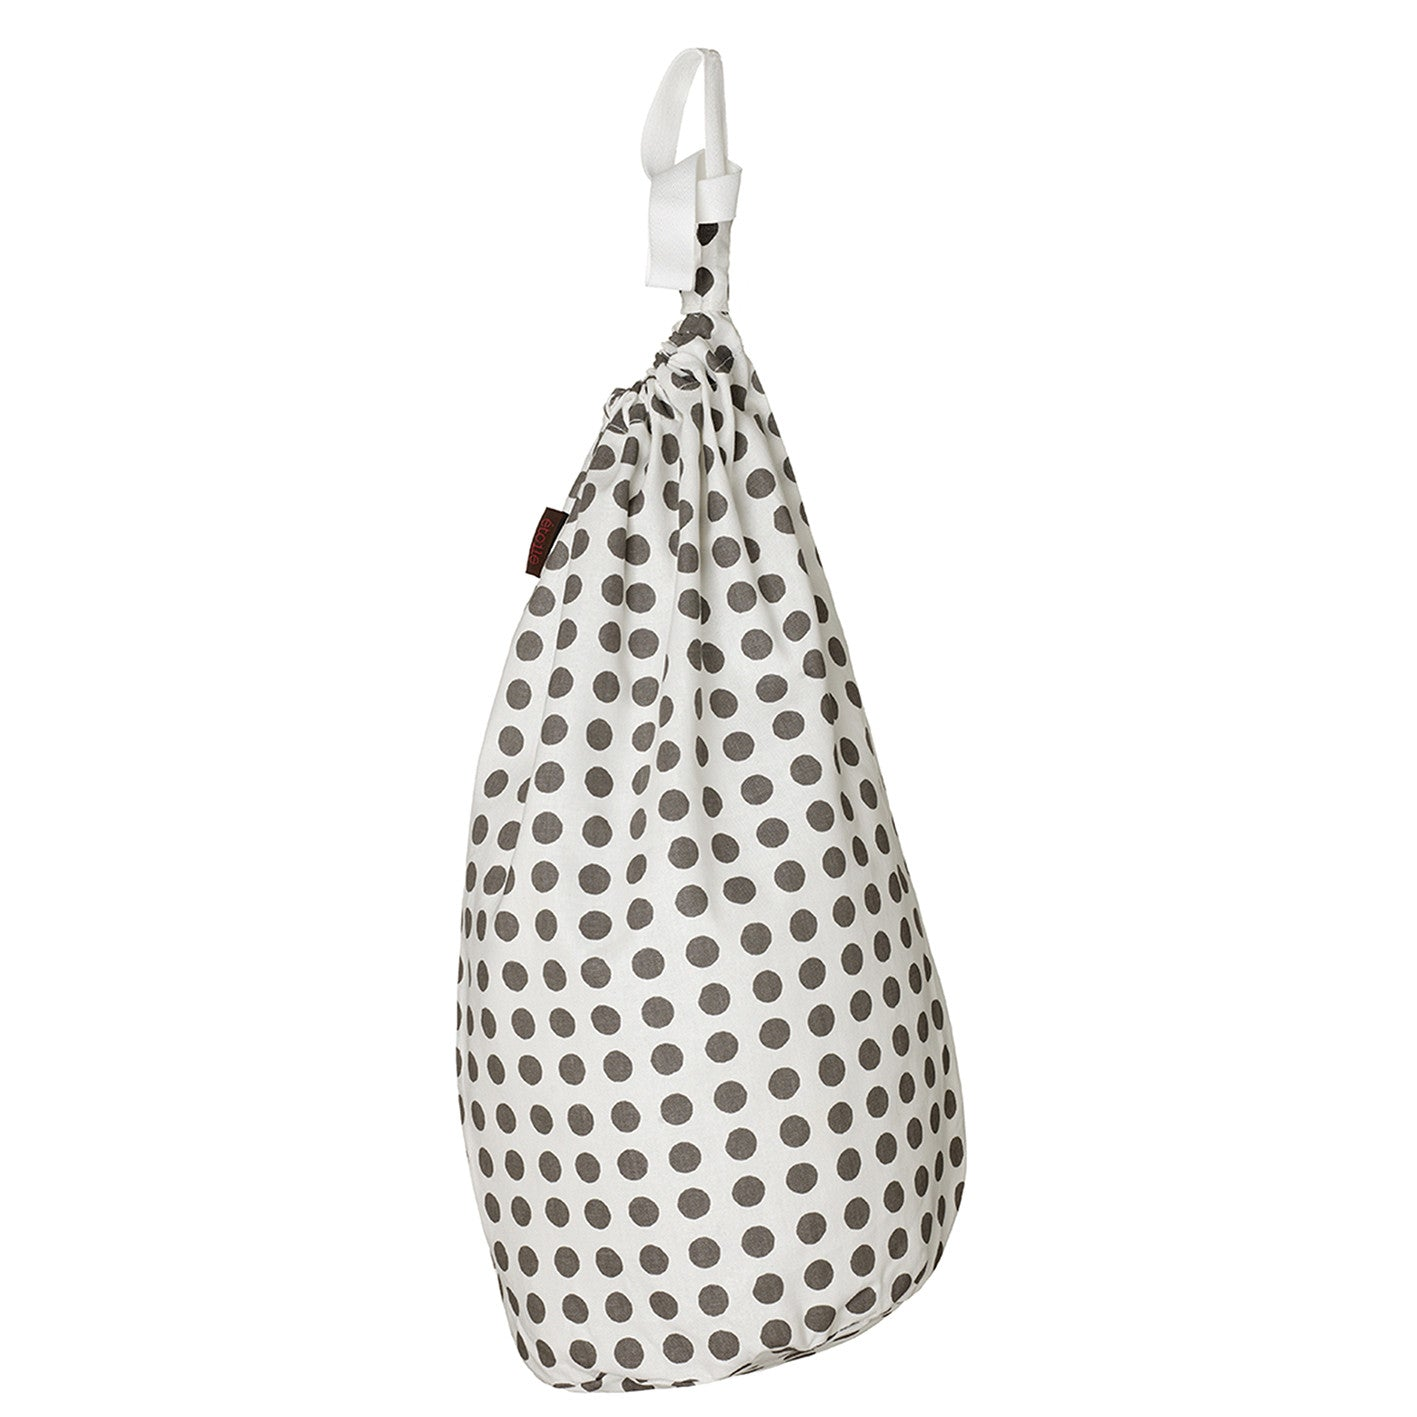 London Polka Dot Spotty Pattern Linen Cotton Drawstring Laundry & Storage Bag in Stone Grey ships from Canada (USA)